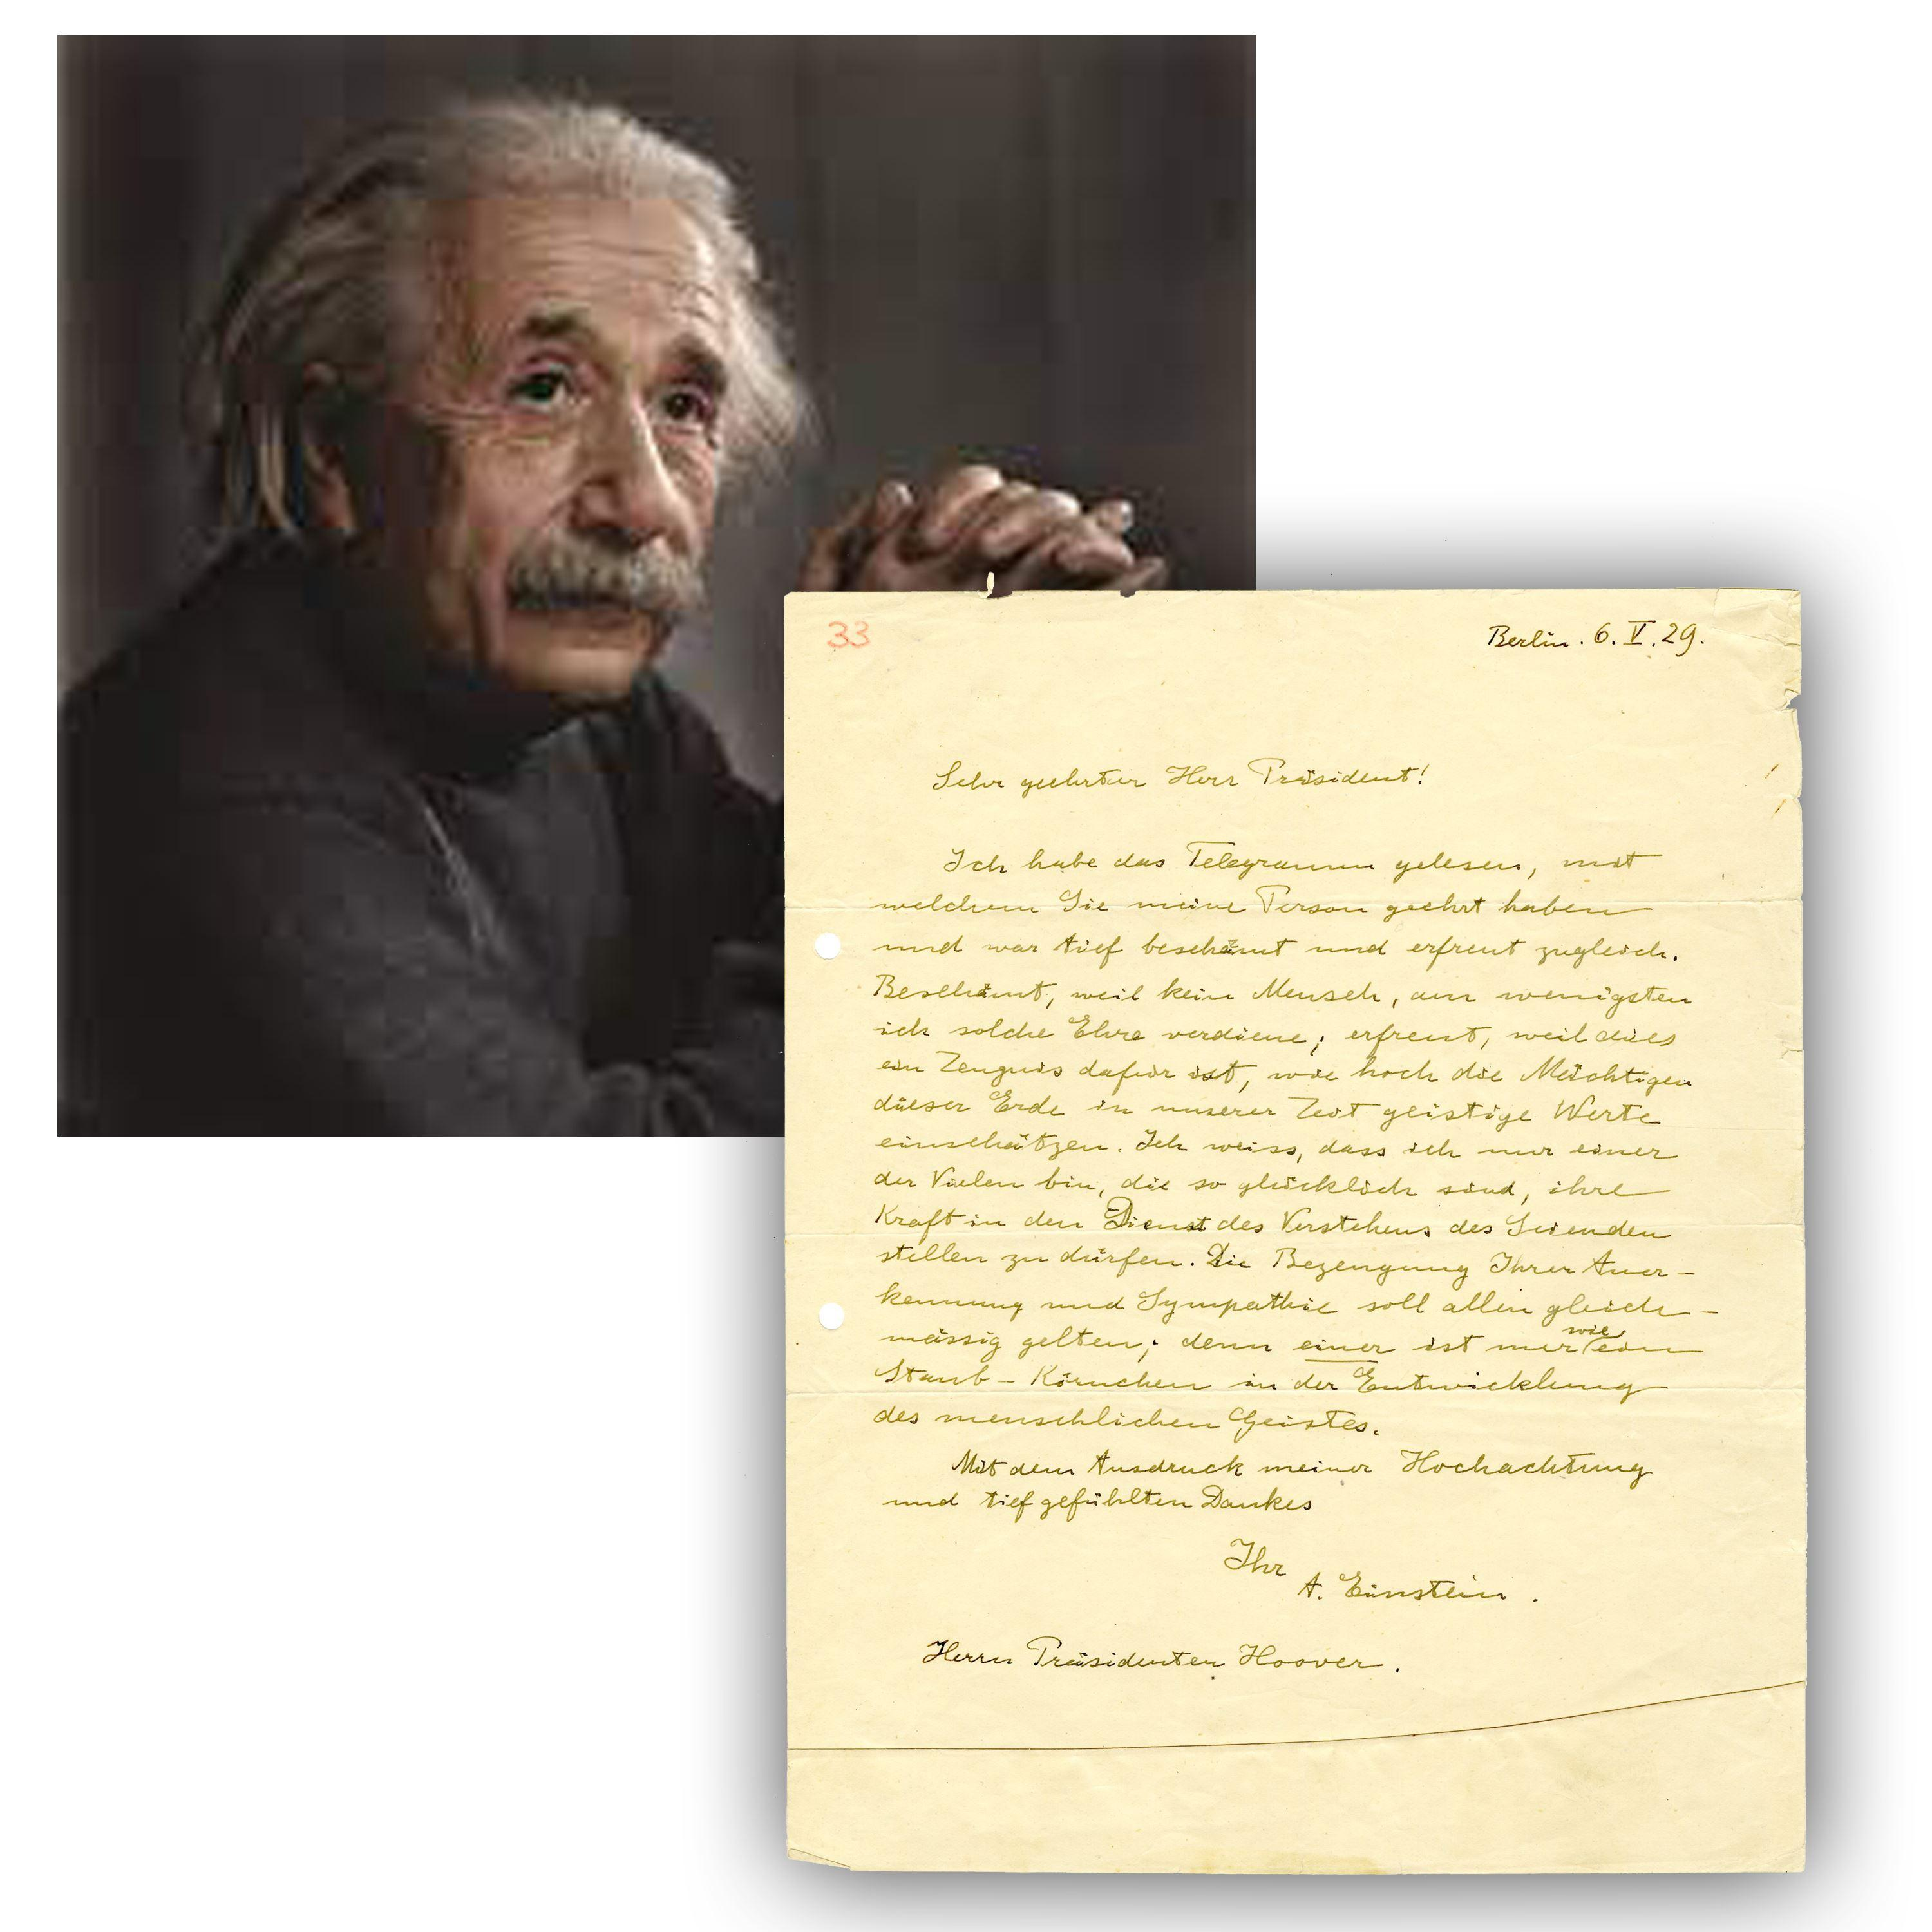 """World-Class Einstein ALS to U. S. President --1 of 2 Known -- Stating Humbly in Part: """"I am but a grain-of-dust in the development of the human spirit"""""""